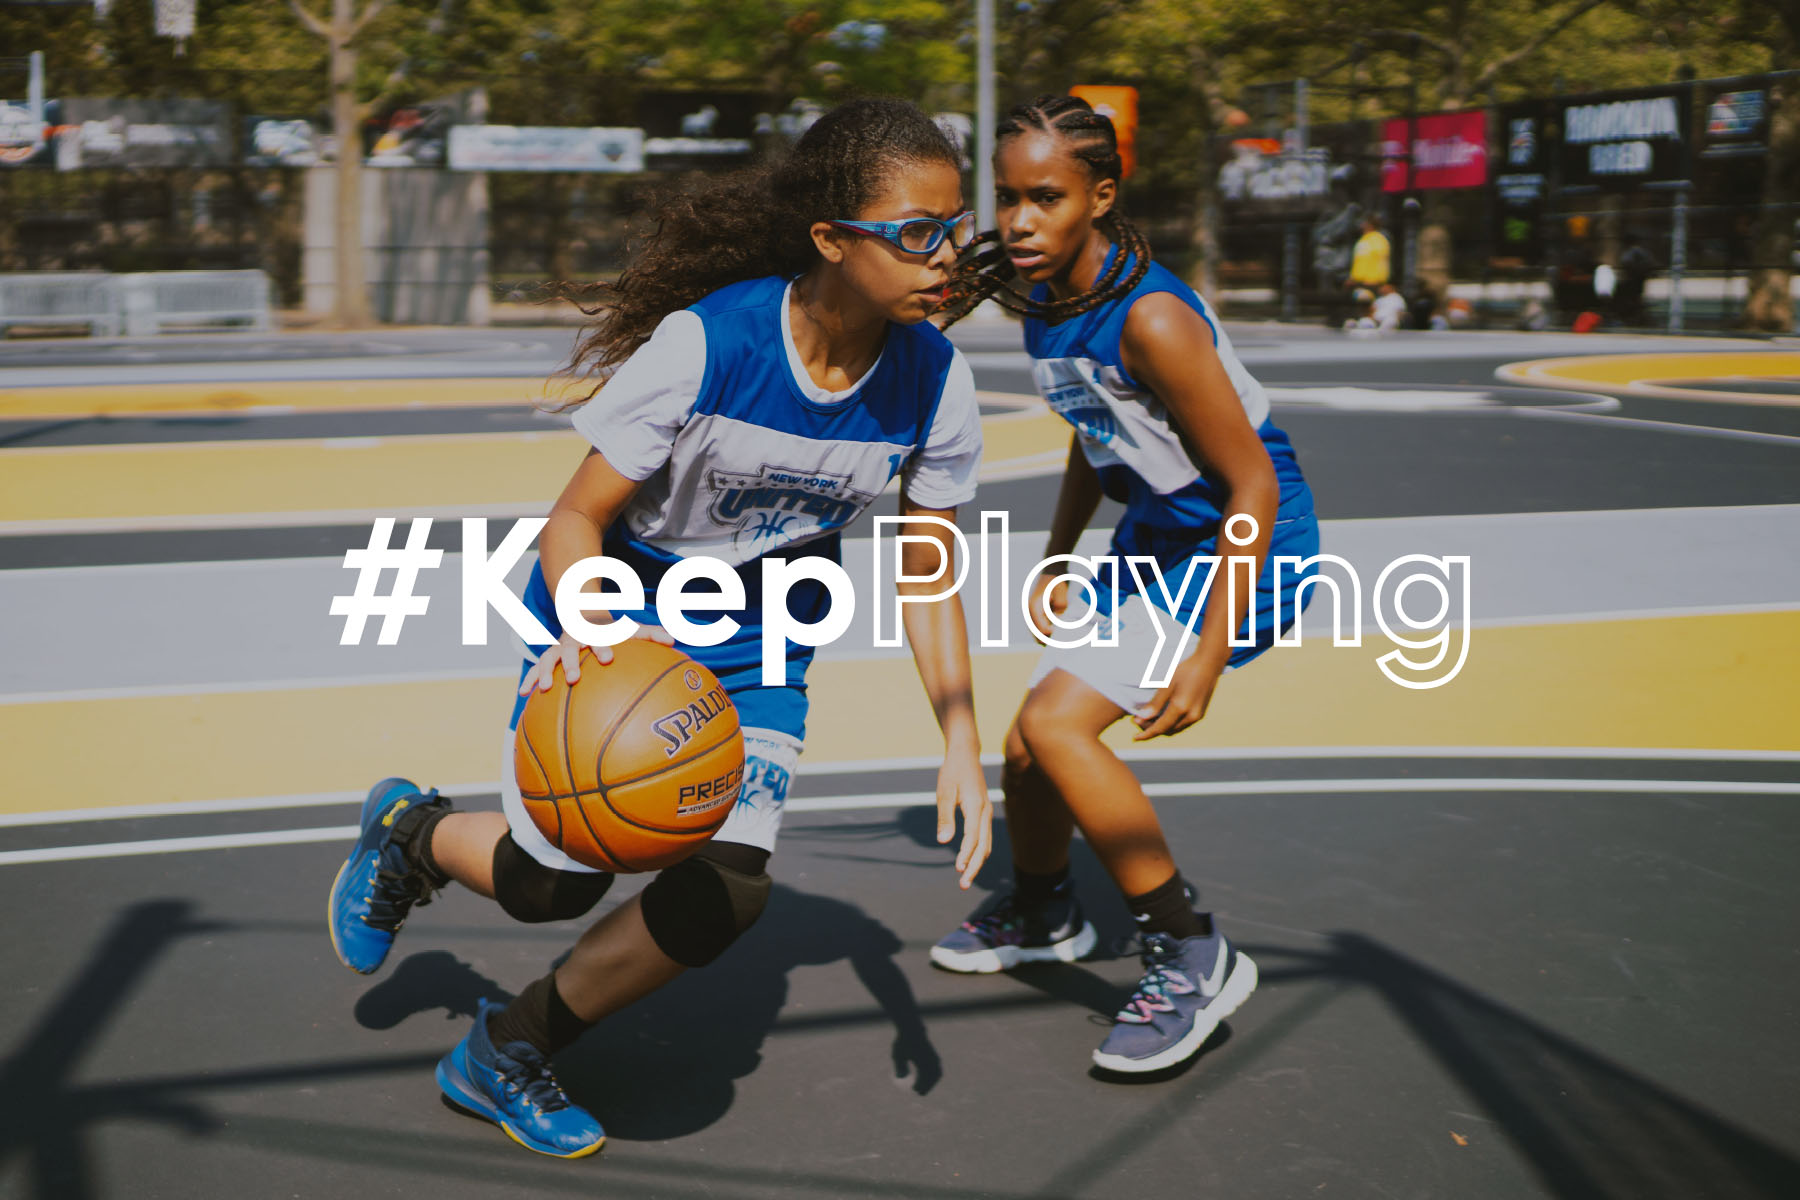 We exist to unlock the possibilities in every girl and woman through the power of sport.